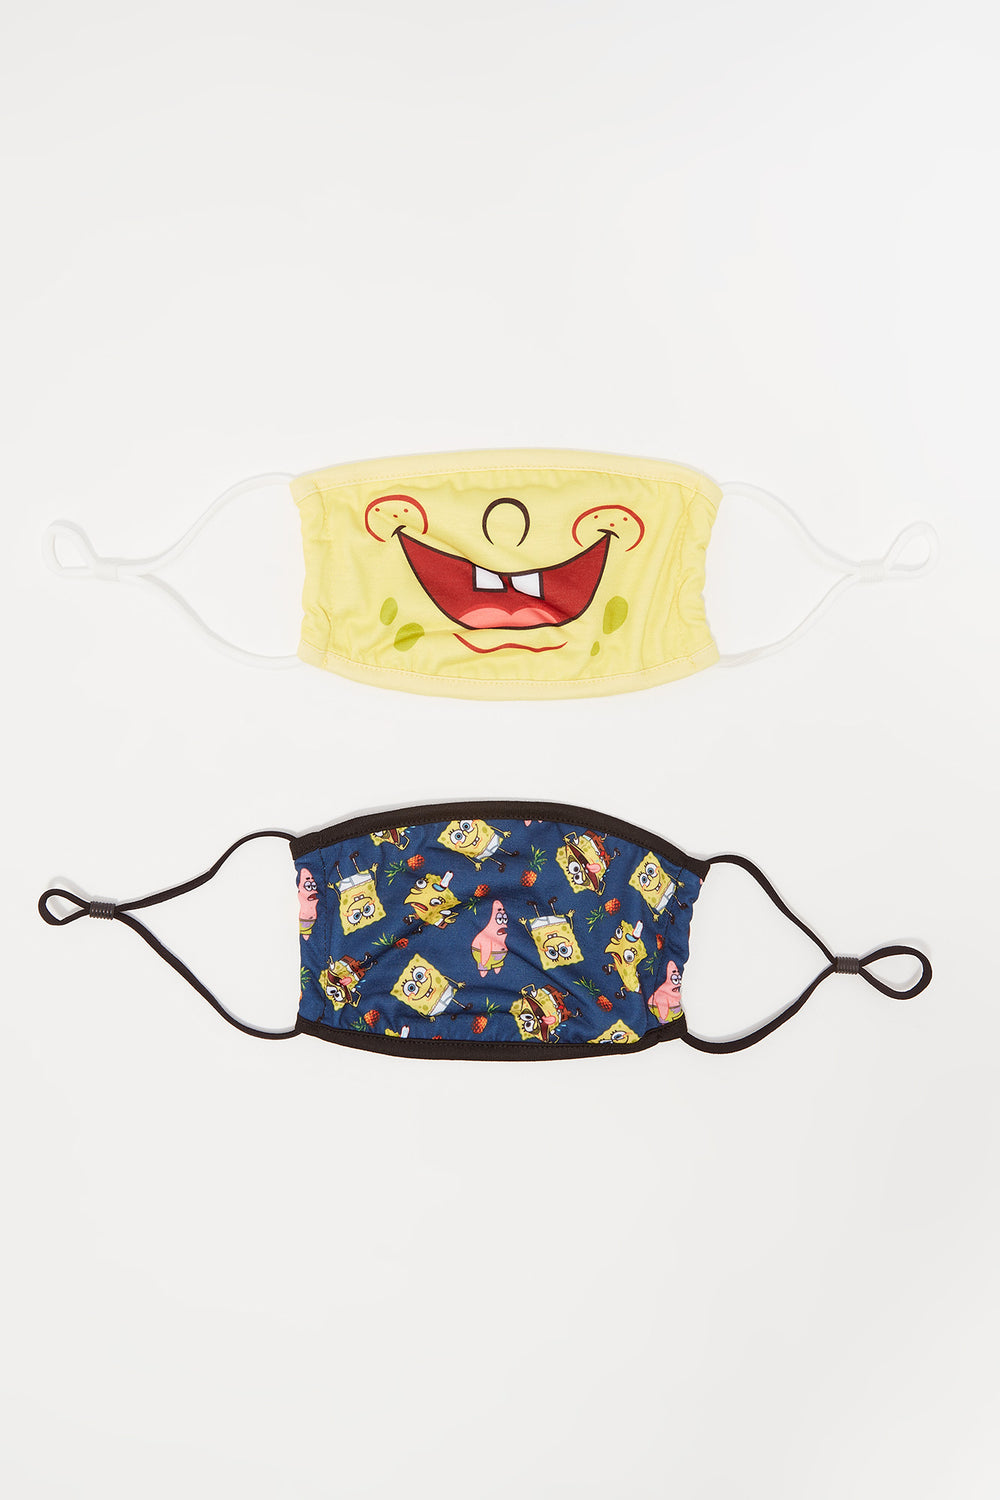 Washable & Reusable SpongeBob SquarePants Graphic Protective Face Masks (2 Pack) Assorted